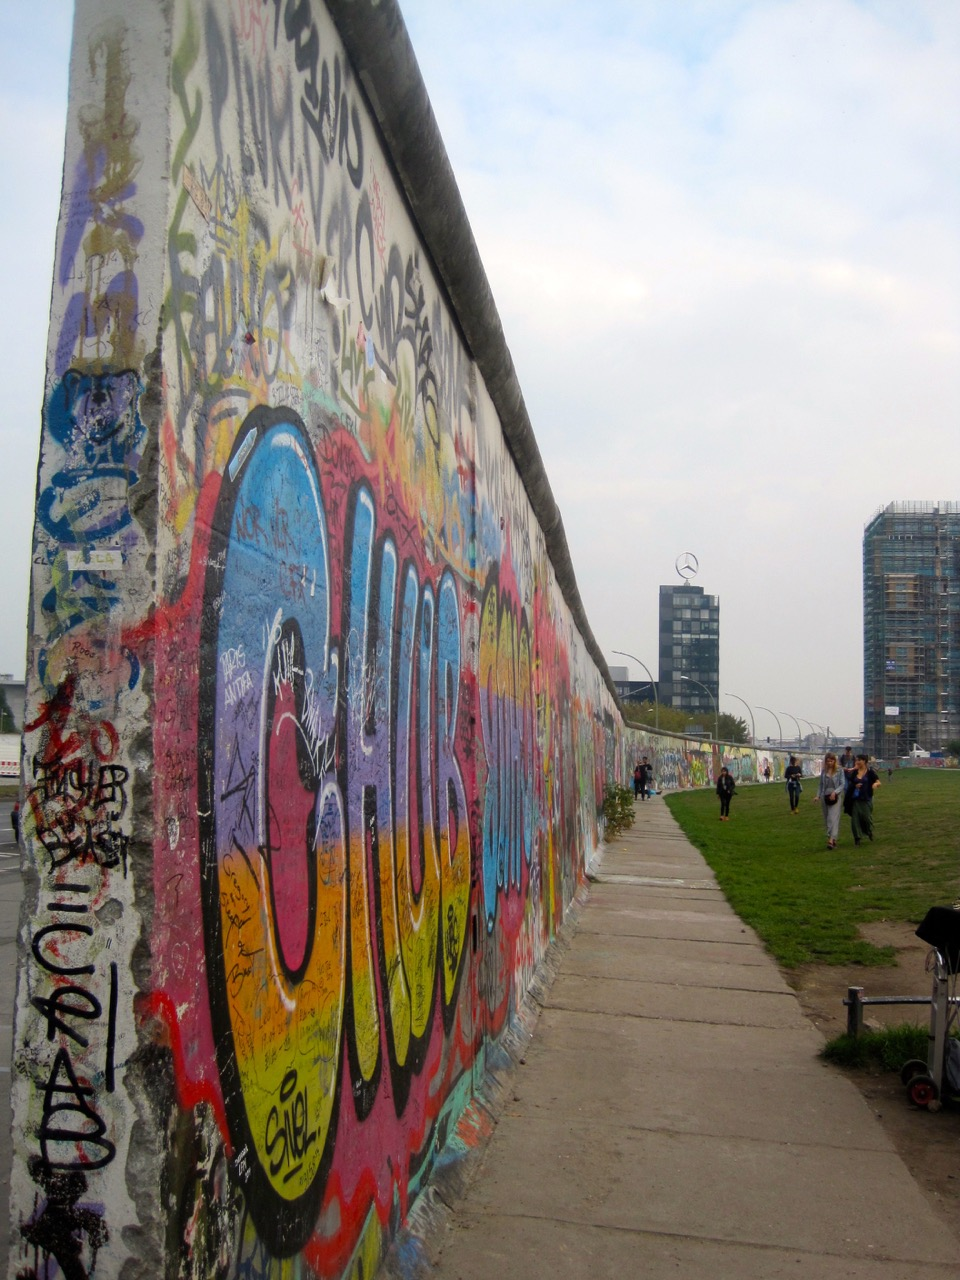 A large section of the Berlin Wall remains as the Eastside Gallery.